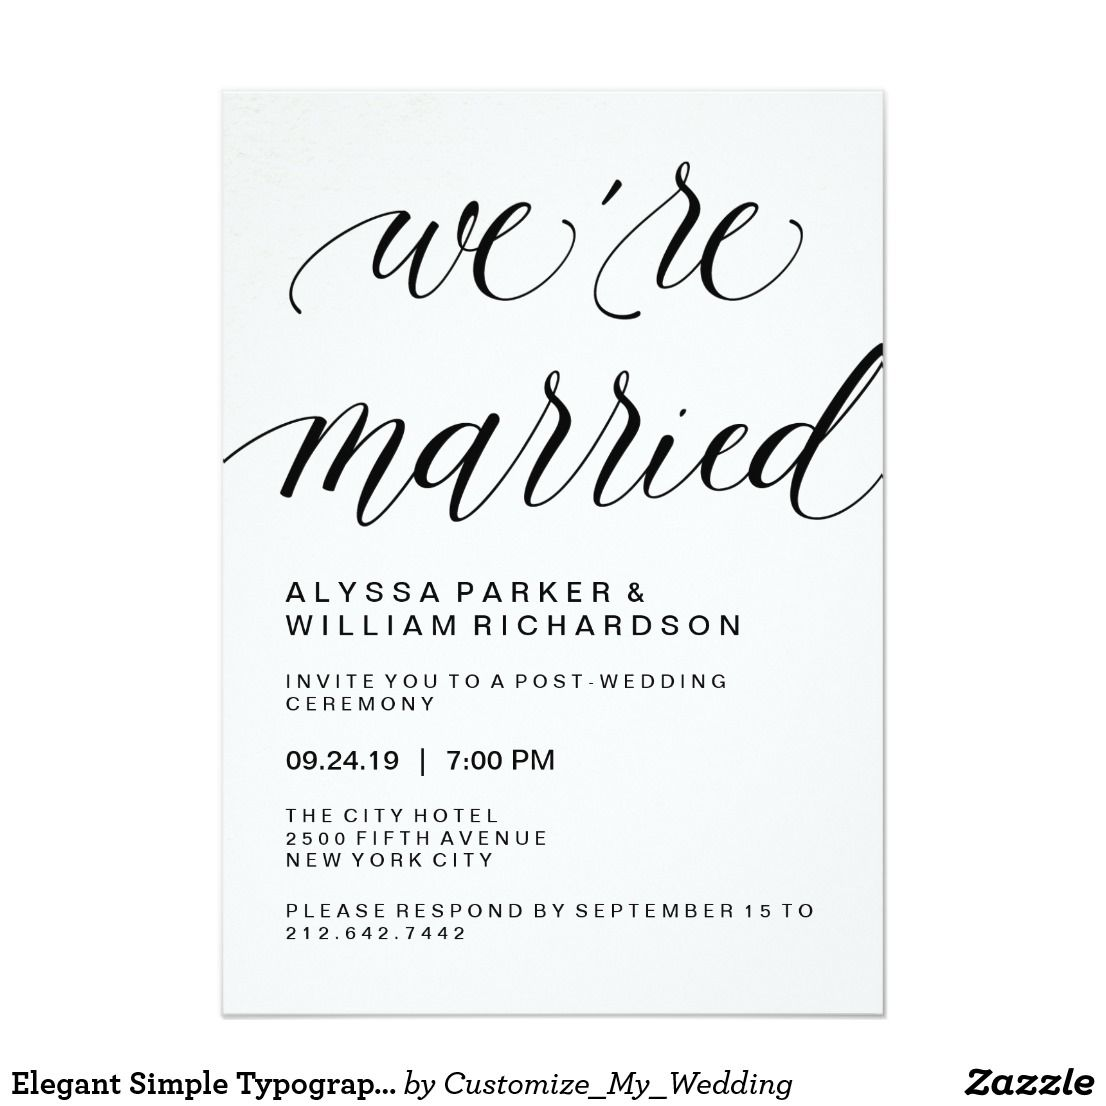 Elegant Simple Typography Post Wedding Ceremony Invitation Pretty